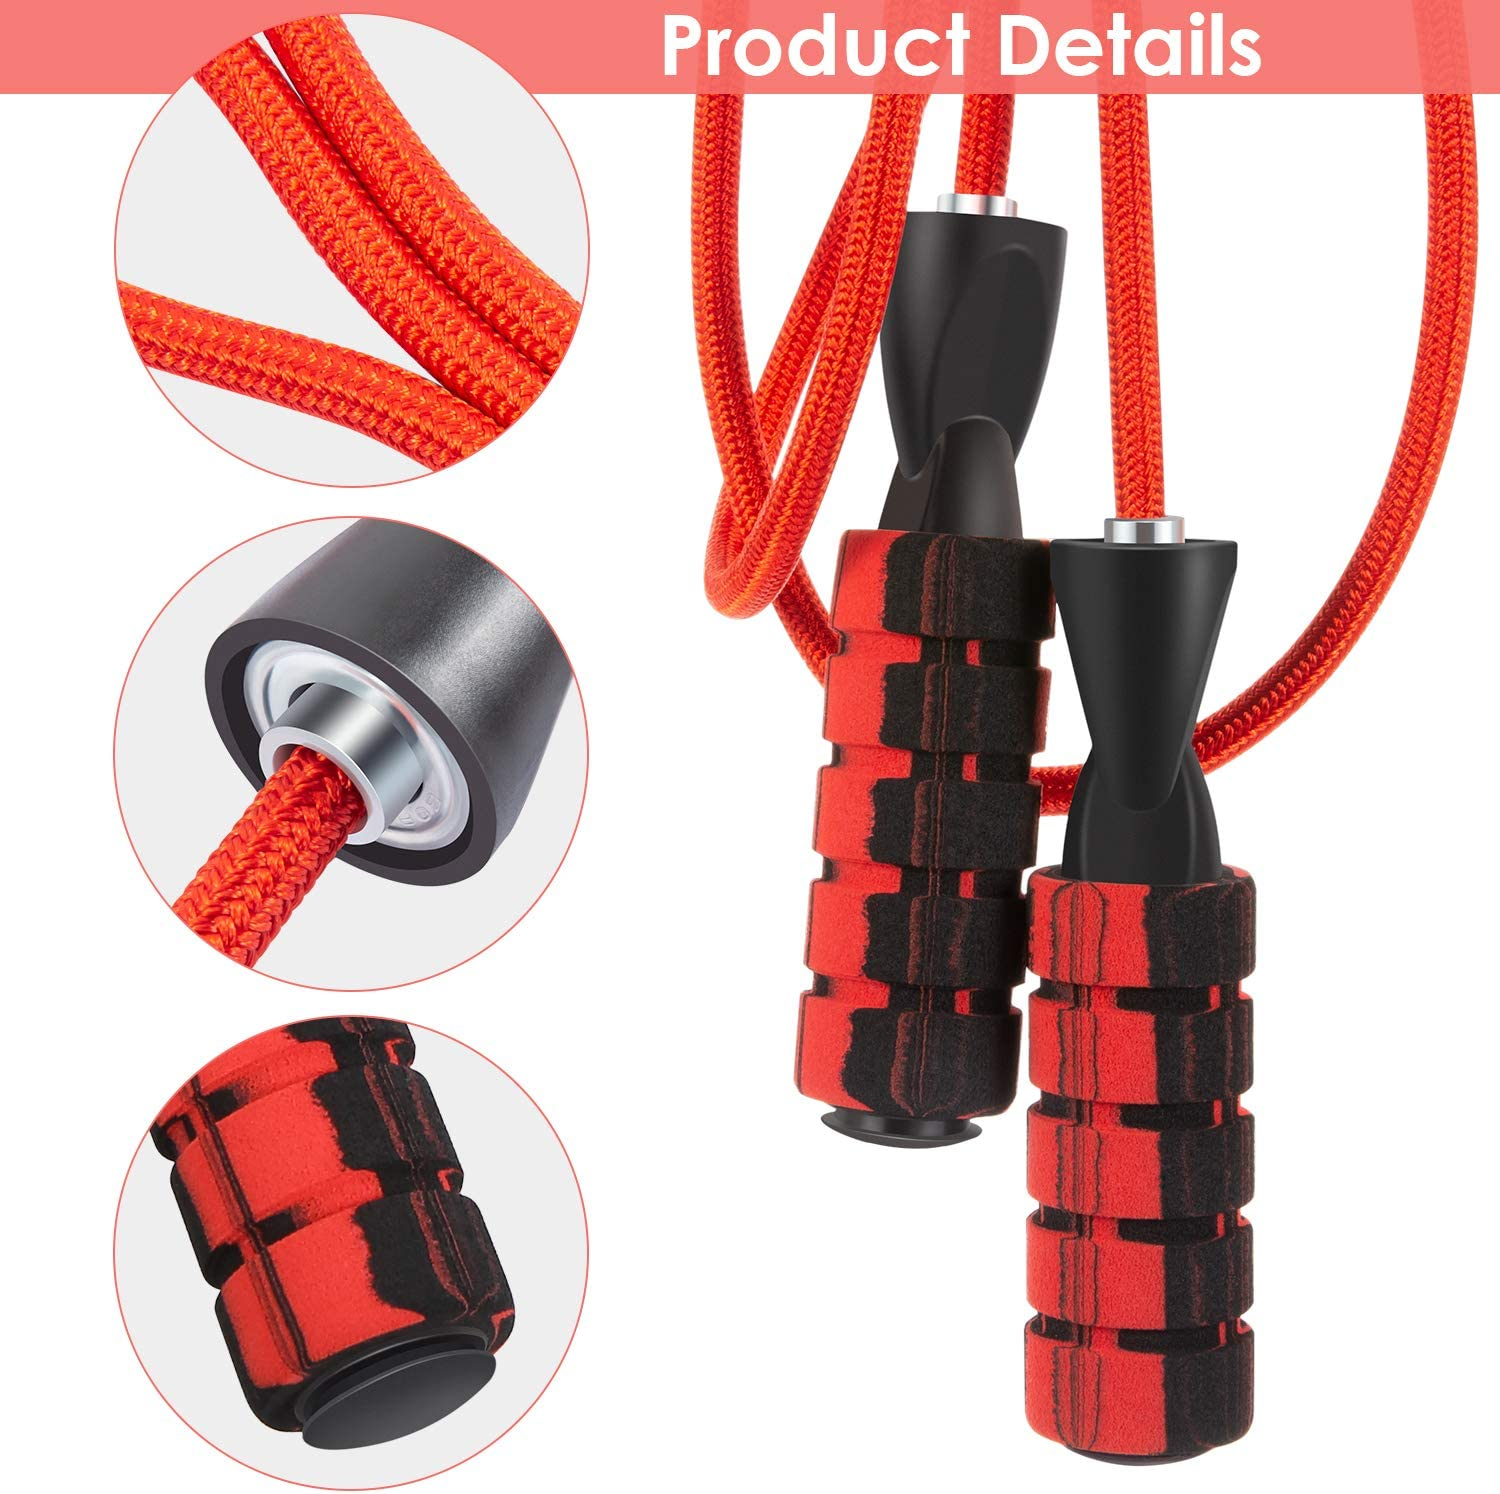 Exercise Training Adjustable Skipping Rope with Ball Bearings and Soft Pad Handgrip Jumping Rope Aerobic Fitness Workouts Body for Men Women Adult Kids Ehunt Jump Rope Tangle-Free